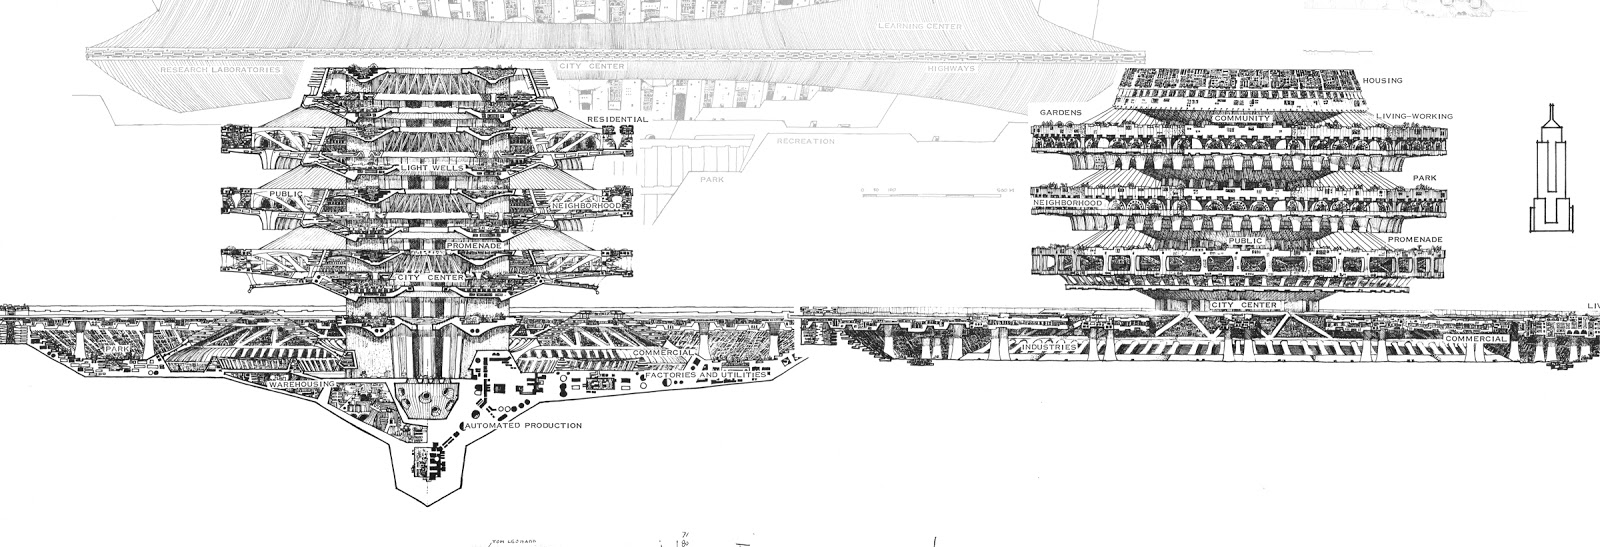 Old Urbanist That 70s Urbanism Yama Wiring Diagram The Arcology No Highways Here Or At Least Not Central Element